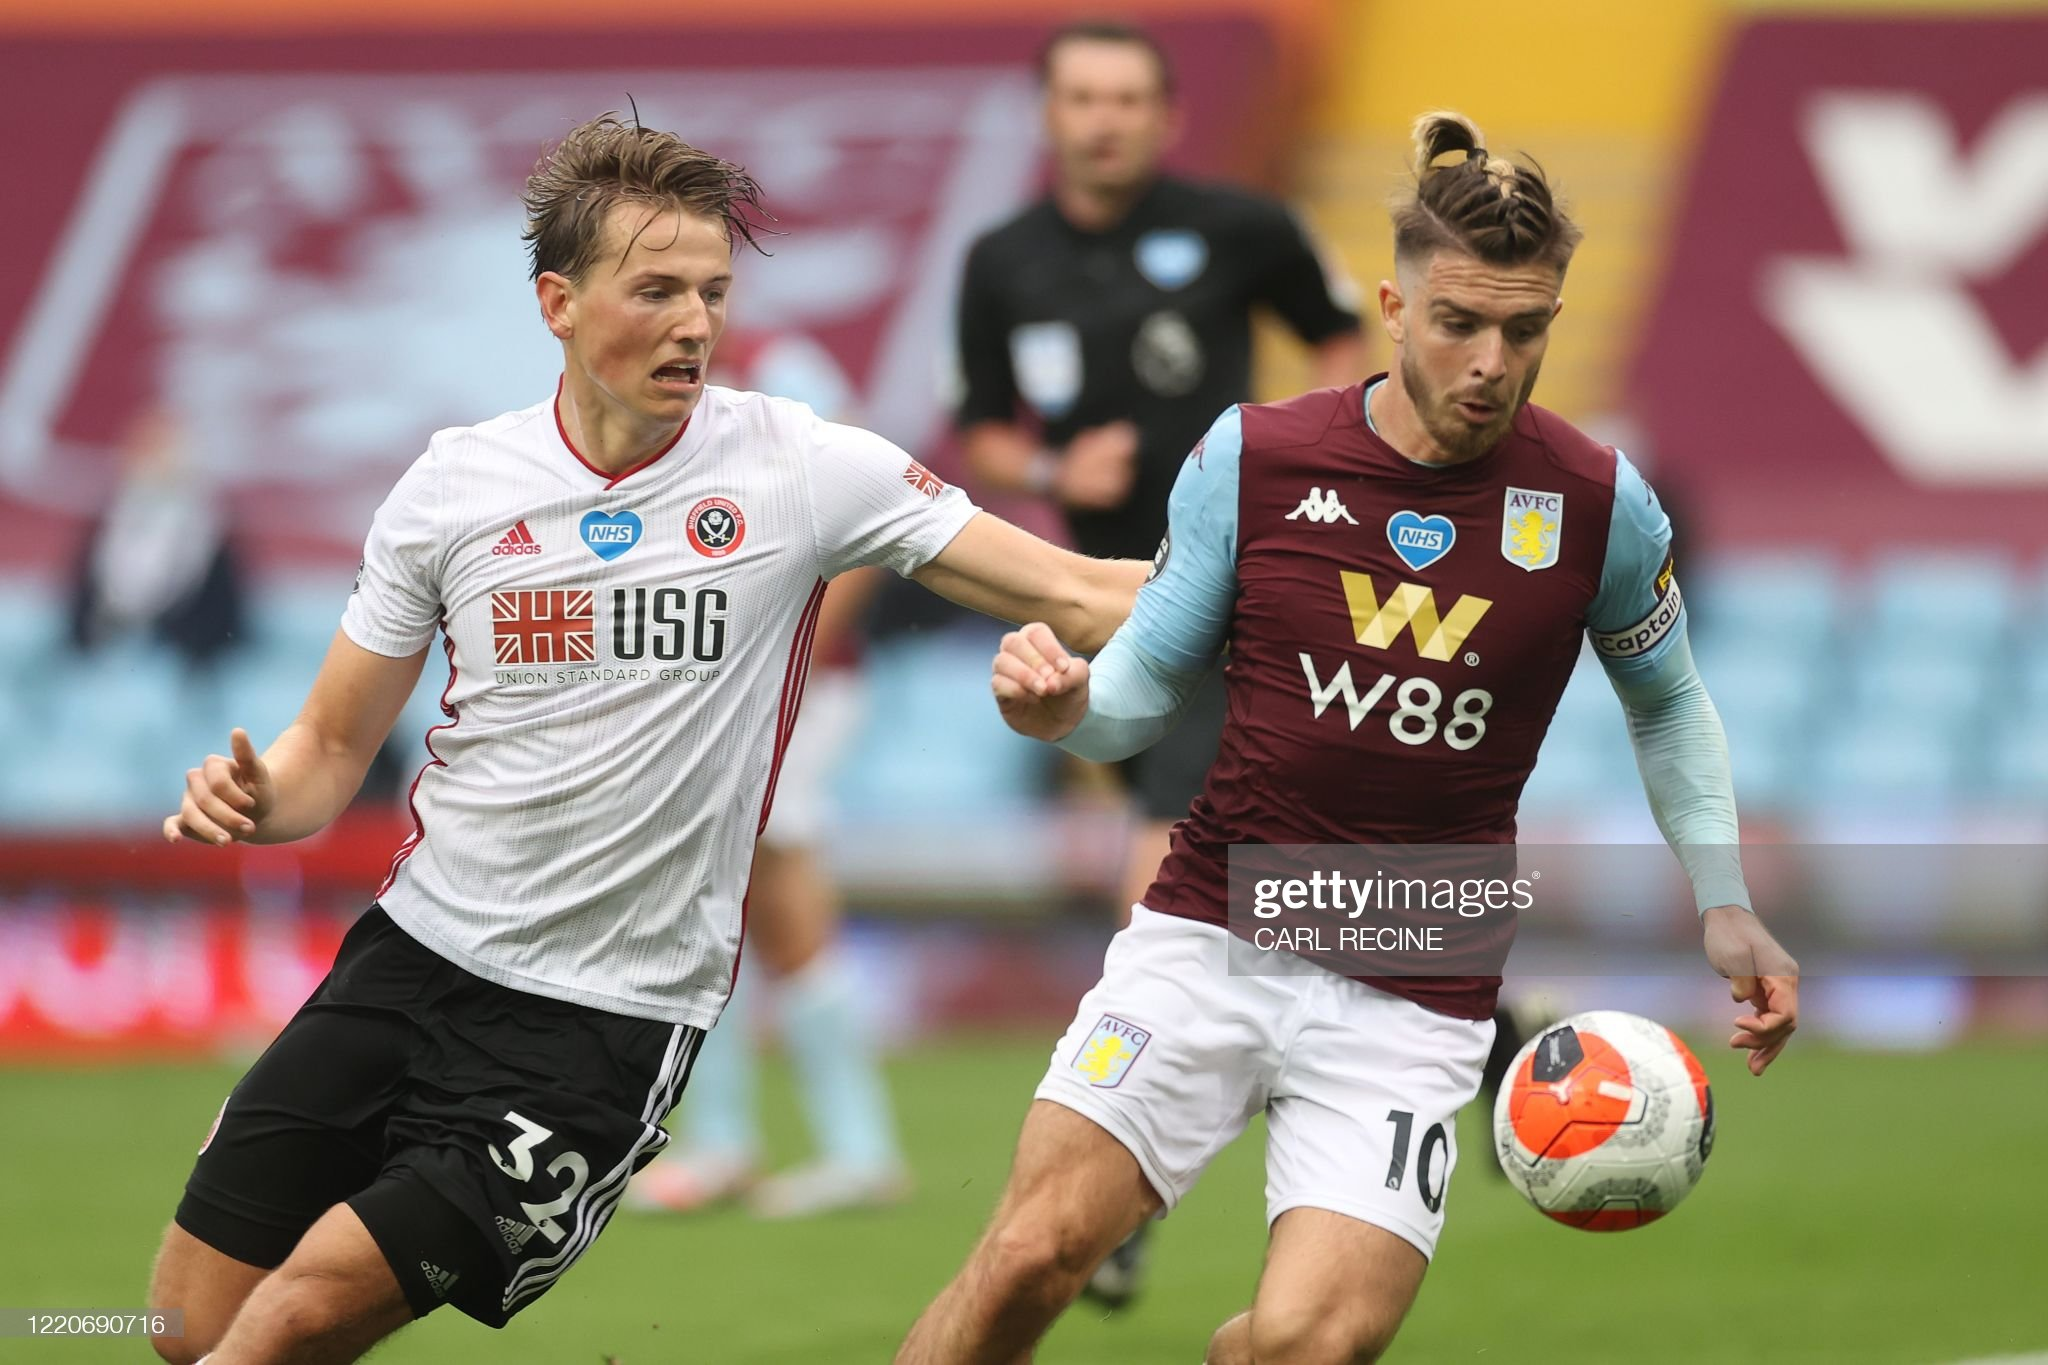 Sheffield United vs Aston Villa preview, prediction and odds